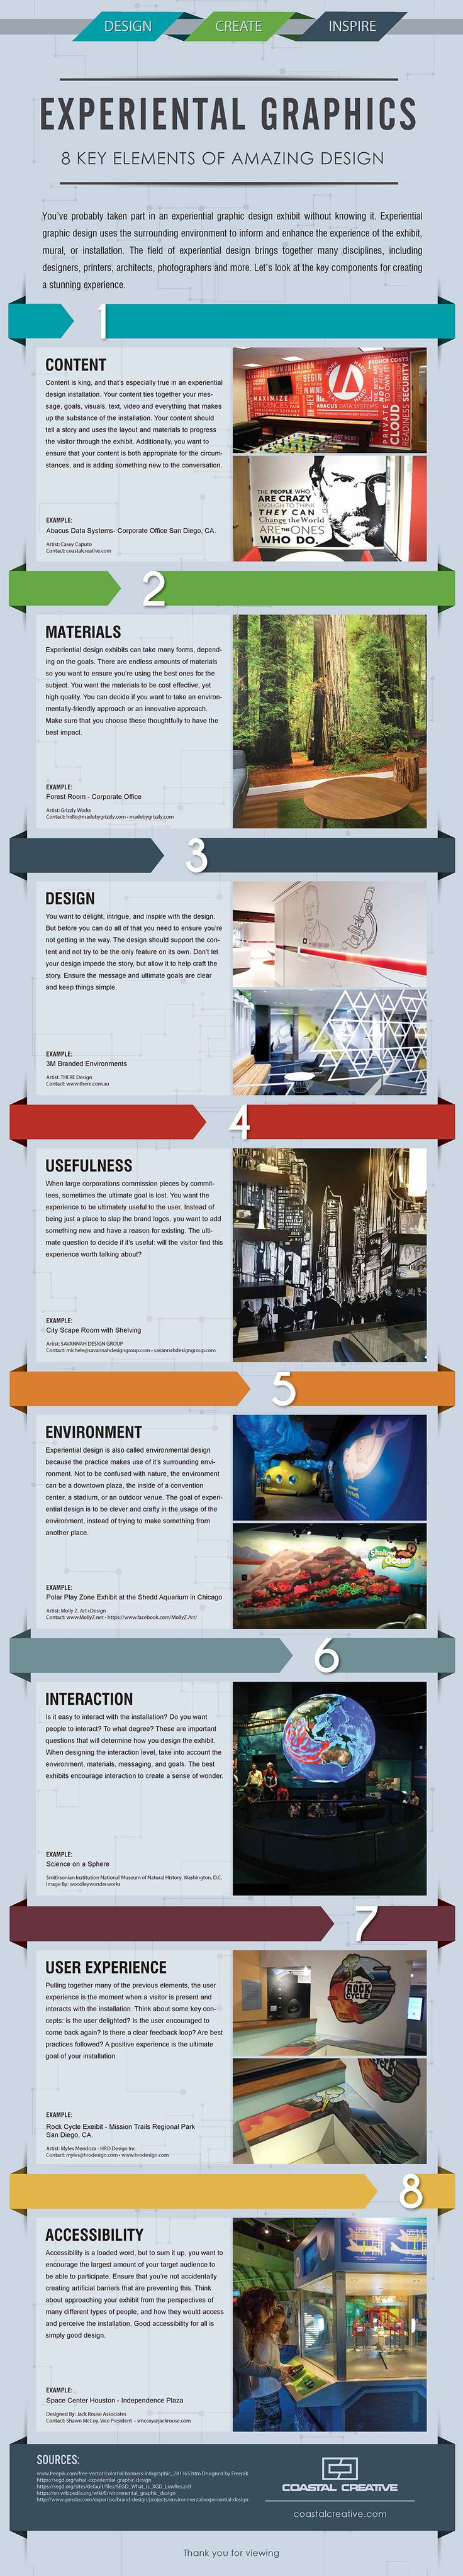 127 best blogs images on pinterest booth design stand design and experiential graphics 8 key elements of amazing design infographic portal kristyandbryce Gallery